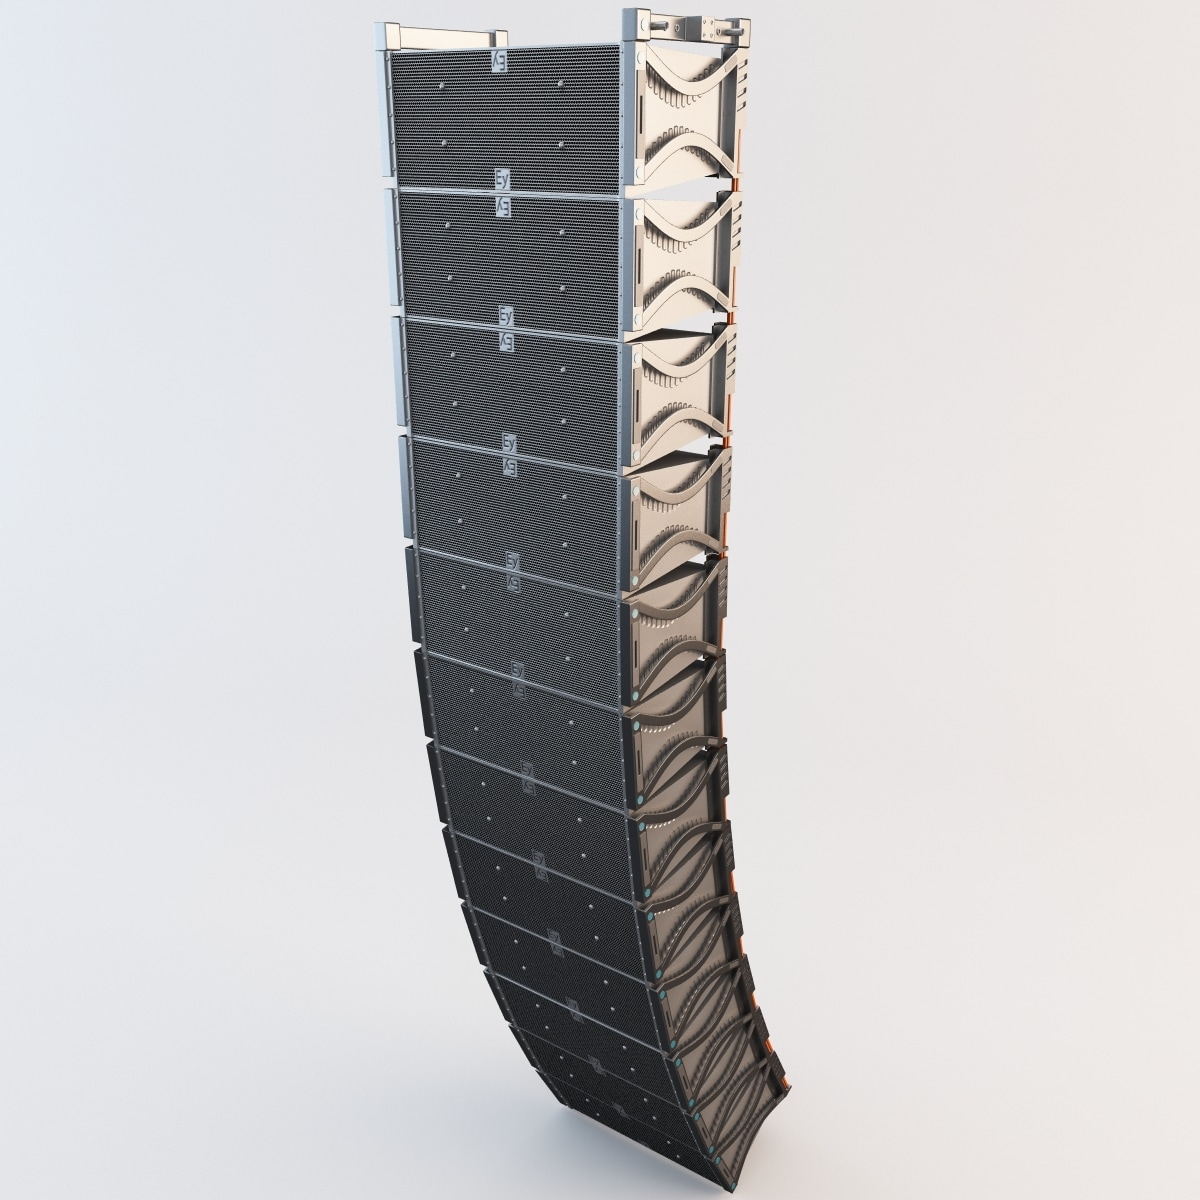 Line_Array_Speaker_System_002.jpg